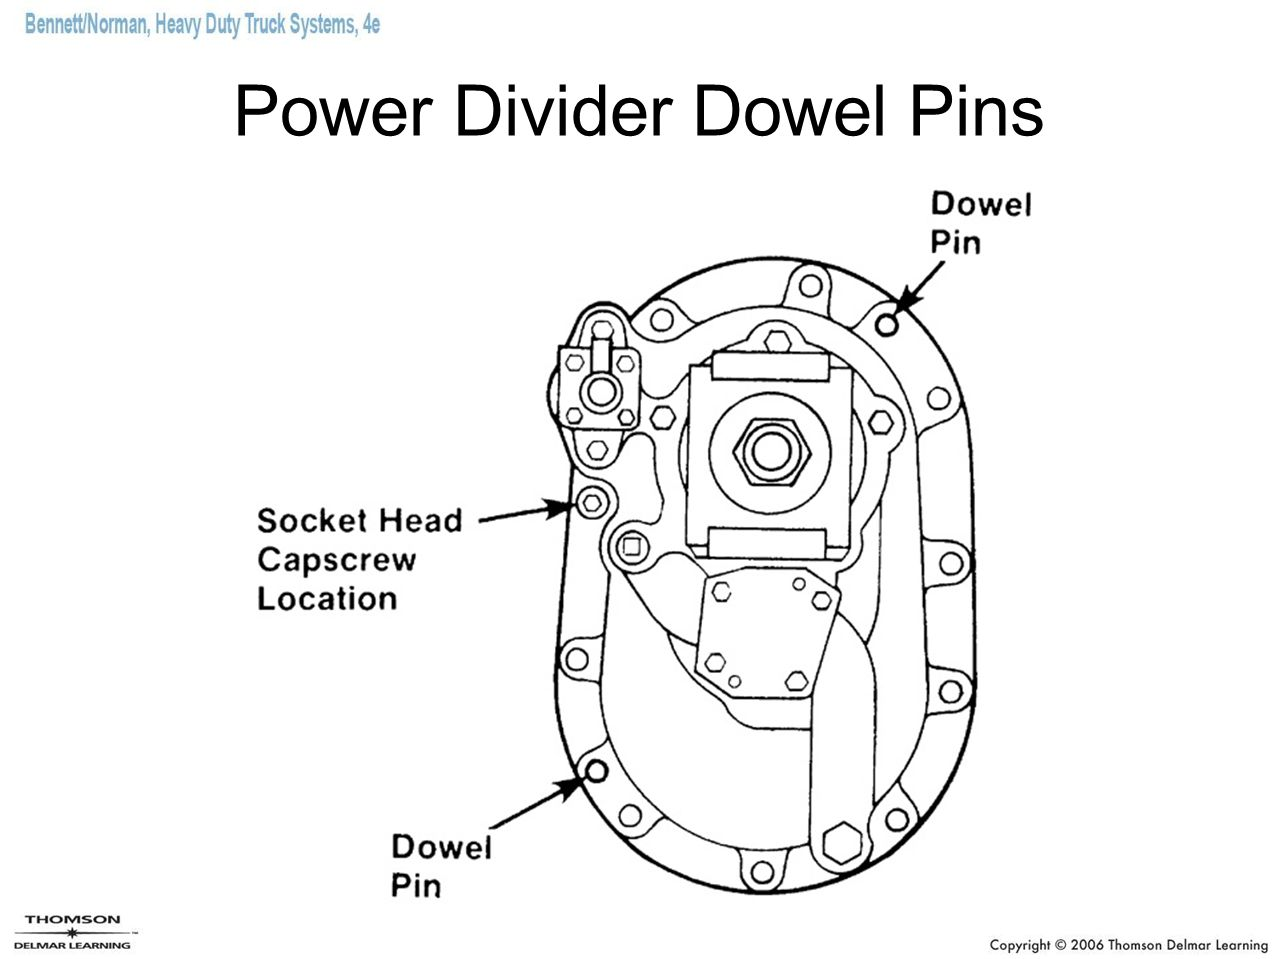 Power Divider Dowel Pins